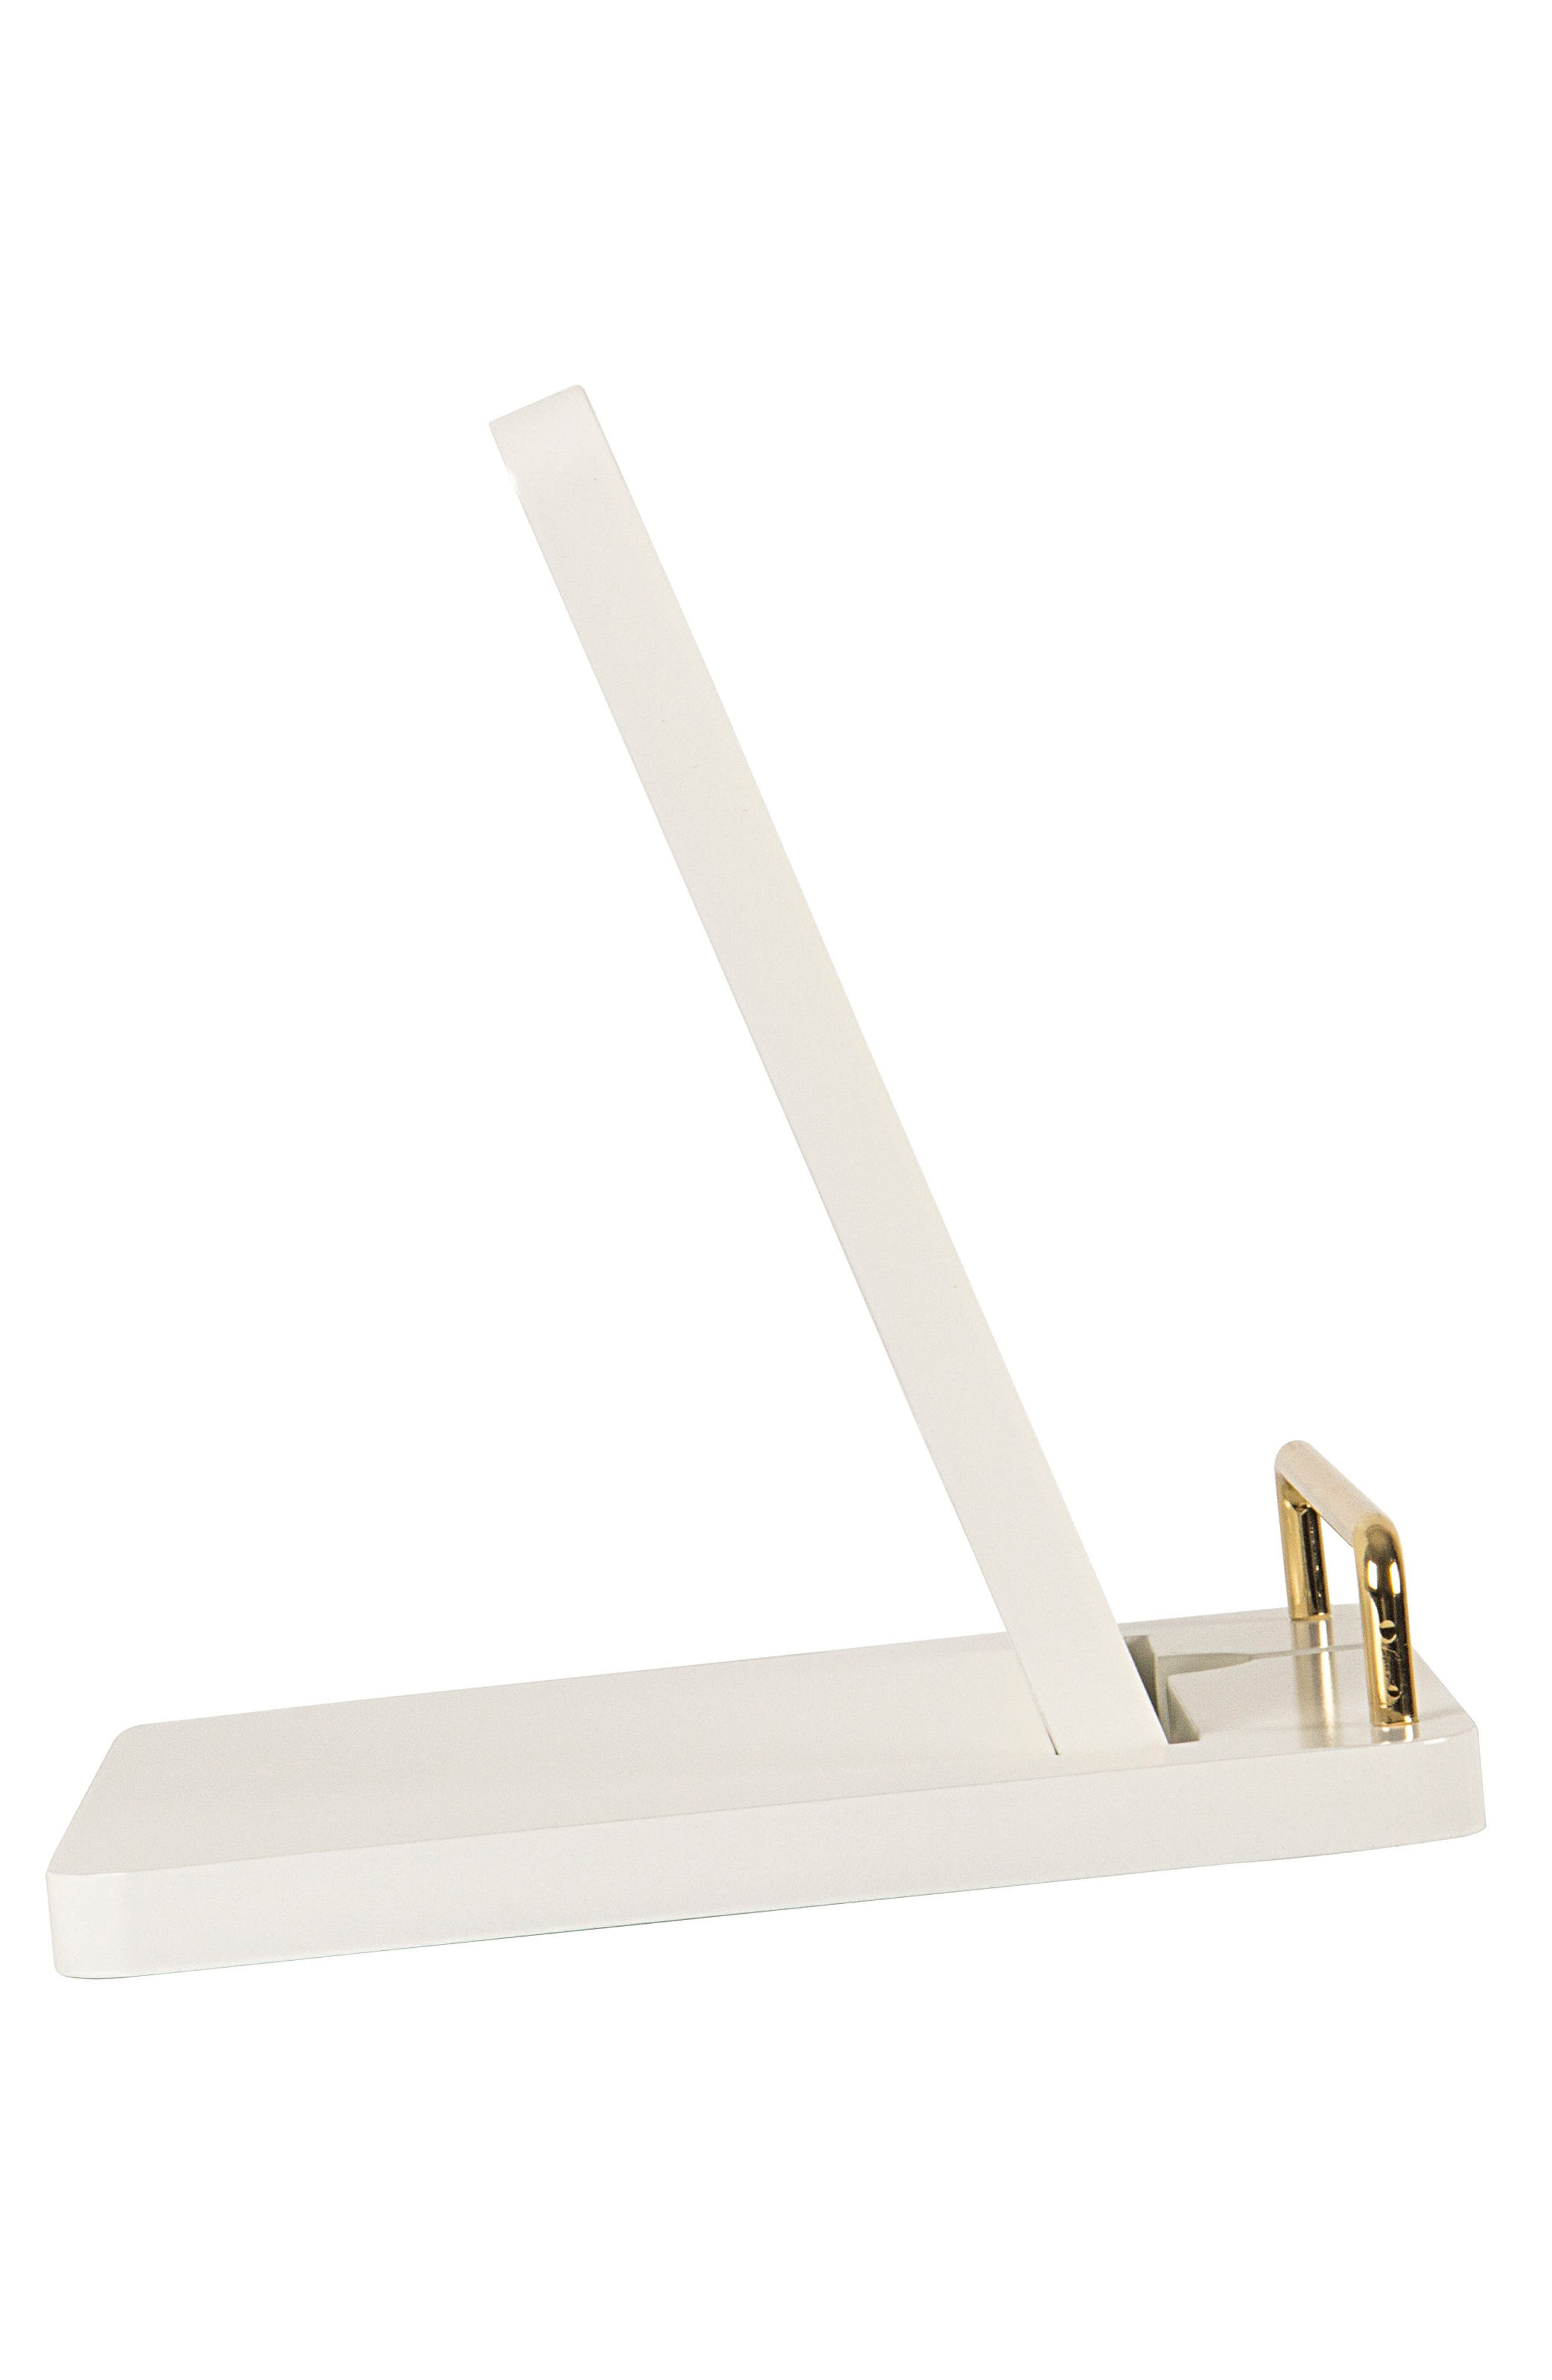 Lacquer Docking Station,                             Alternate thumbnail 6, color,                             GOLD